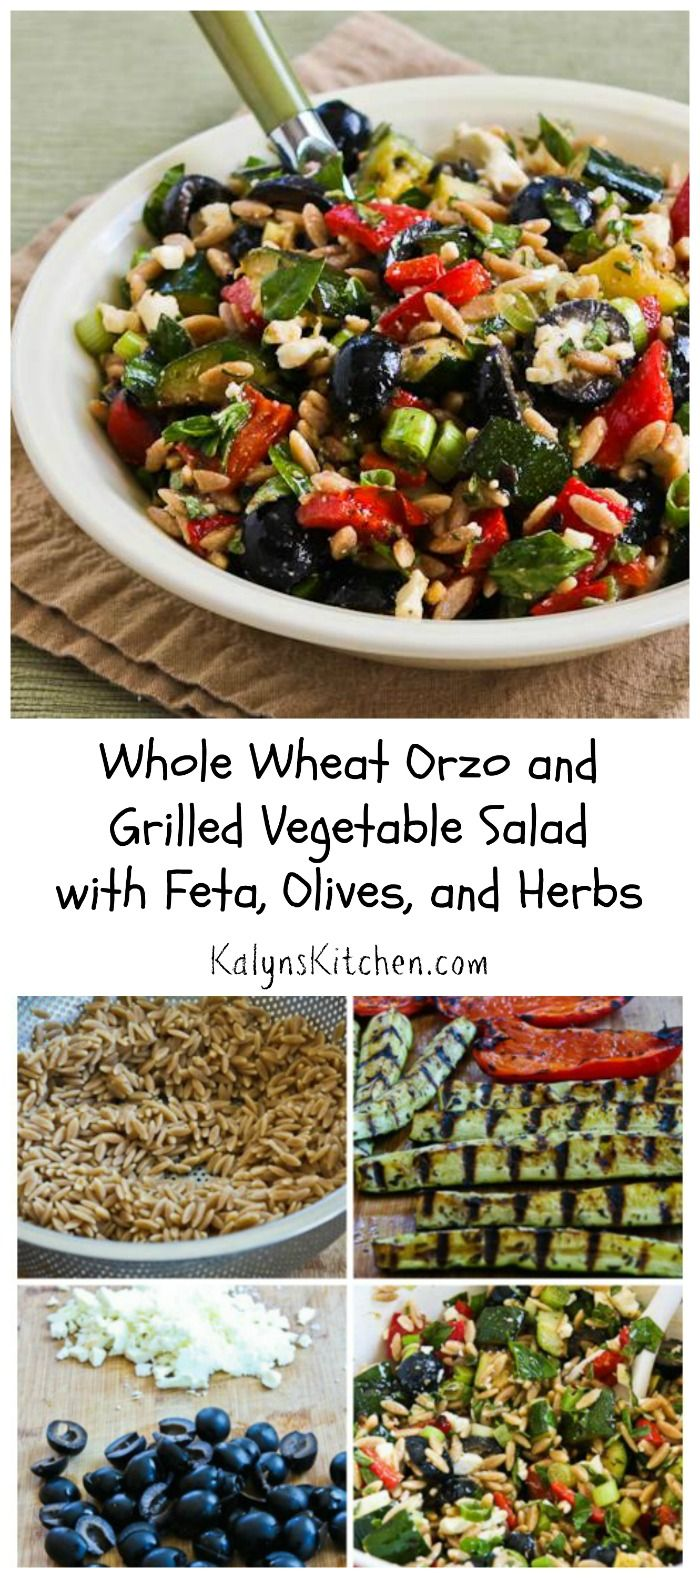 I love this Whole Wheat Orzo and Grilled Vegetable Salad with Feta, Olives, and Herbs.  I use less orzo and more vegetables, cheese, and herbs for a lower-carb pasta salad with all the flavors of summer.  This would be a hit at any summer party or as a side dish for grilled chicken or fish. Use brown rice for a gluten-free version. [from KalynsKitchen.com]